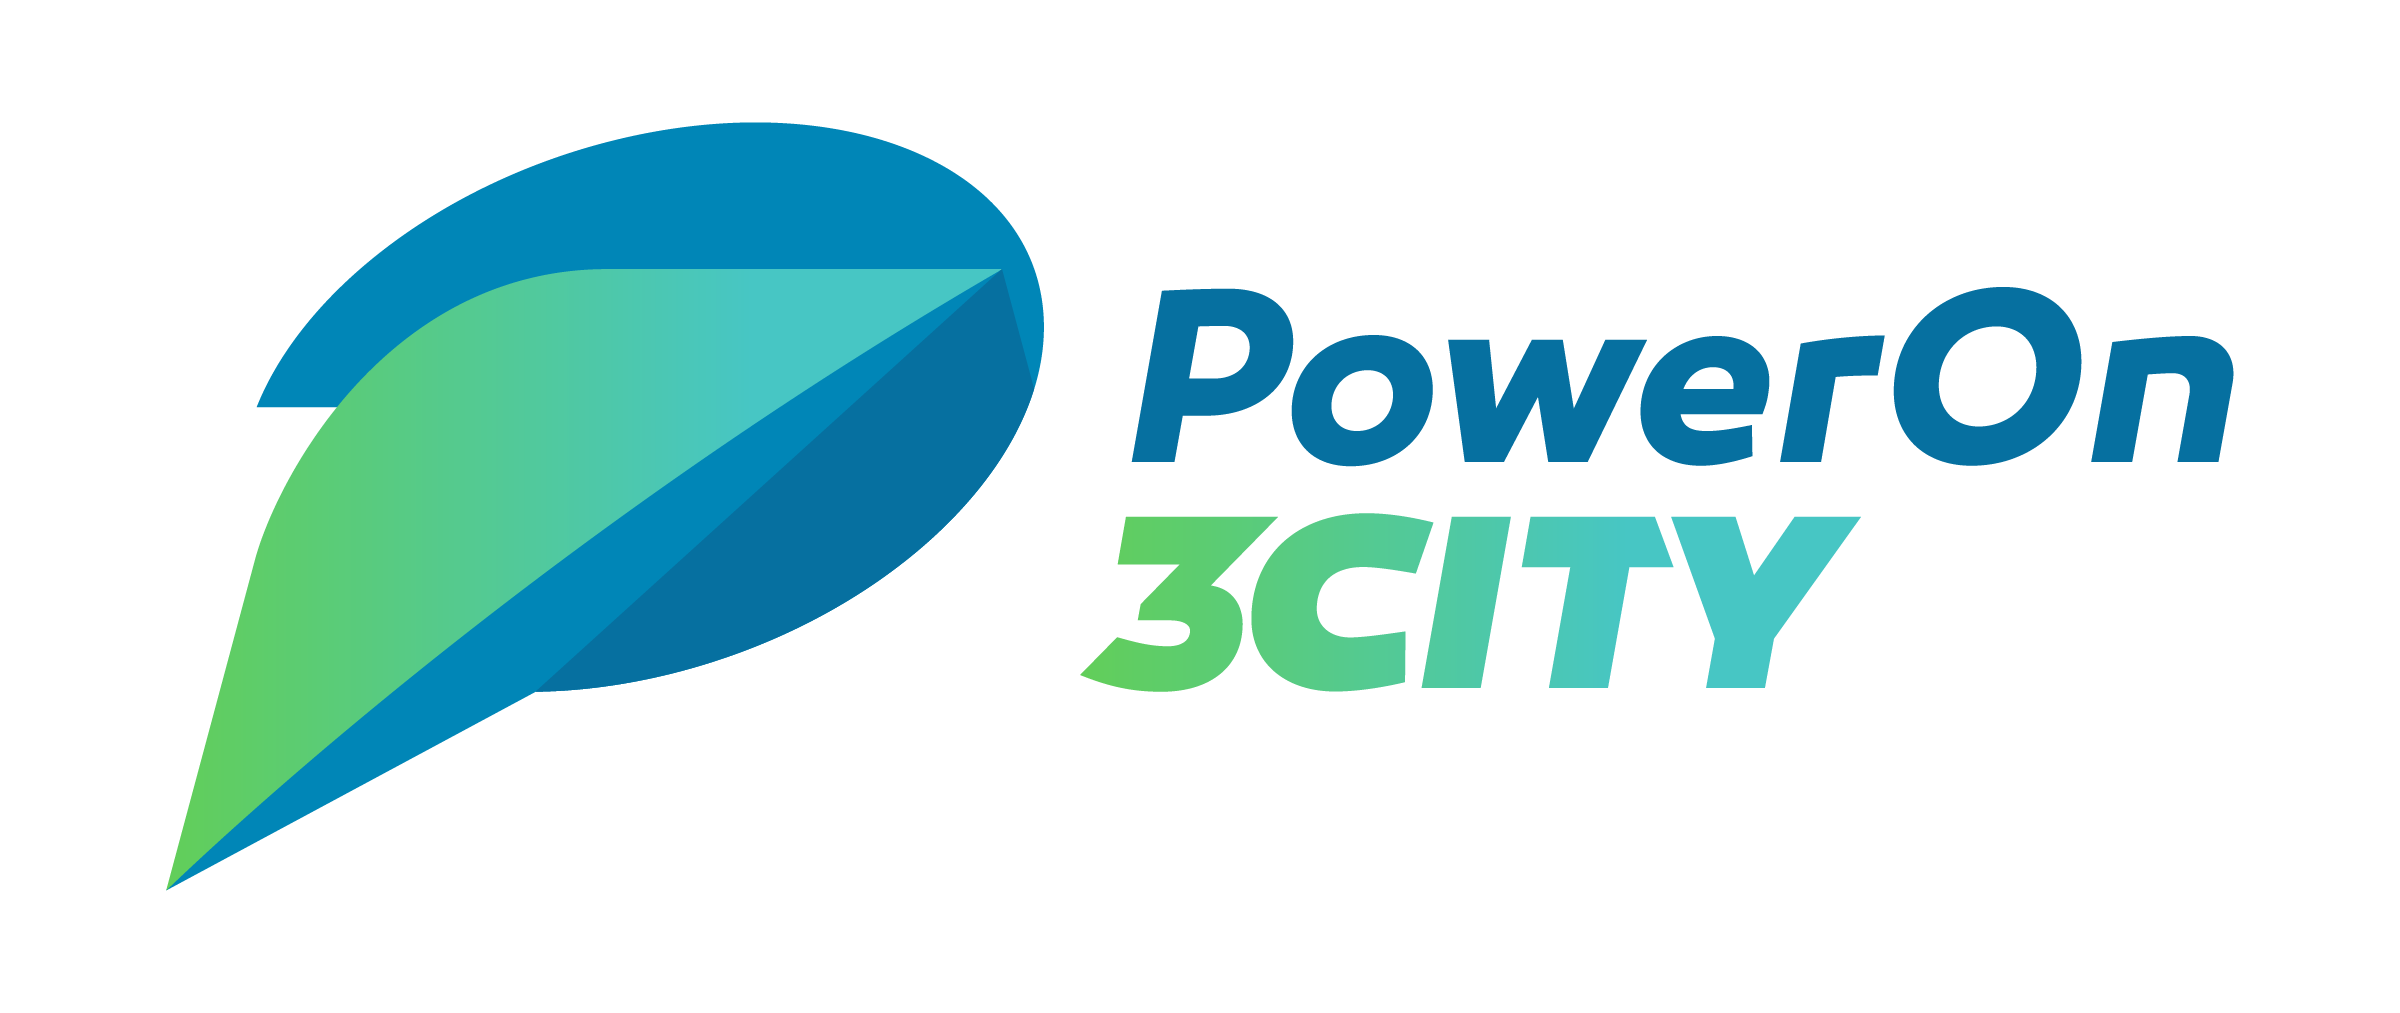 poweron3city